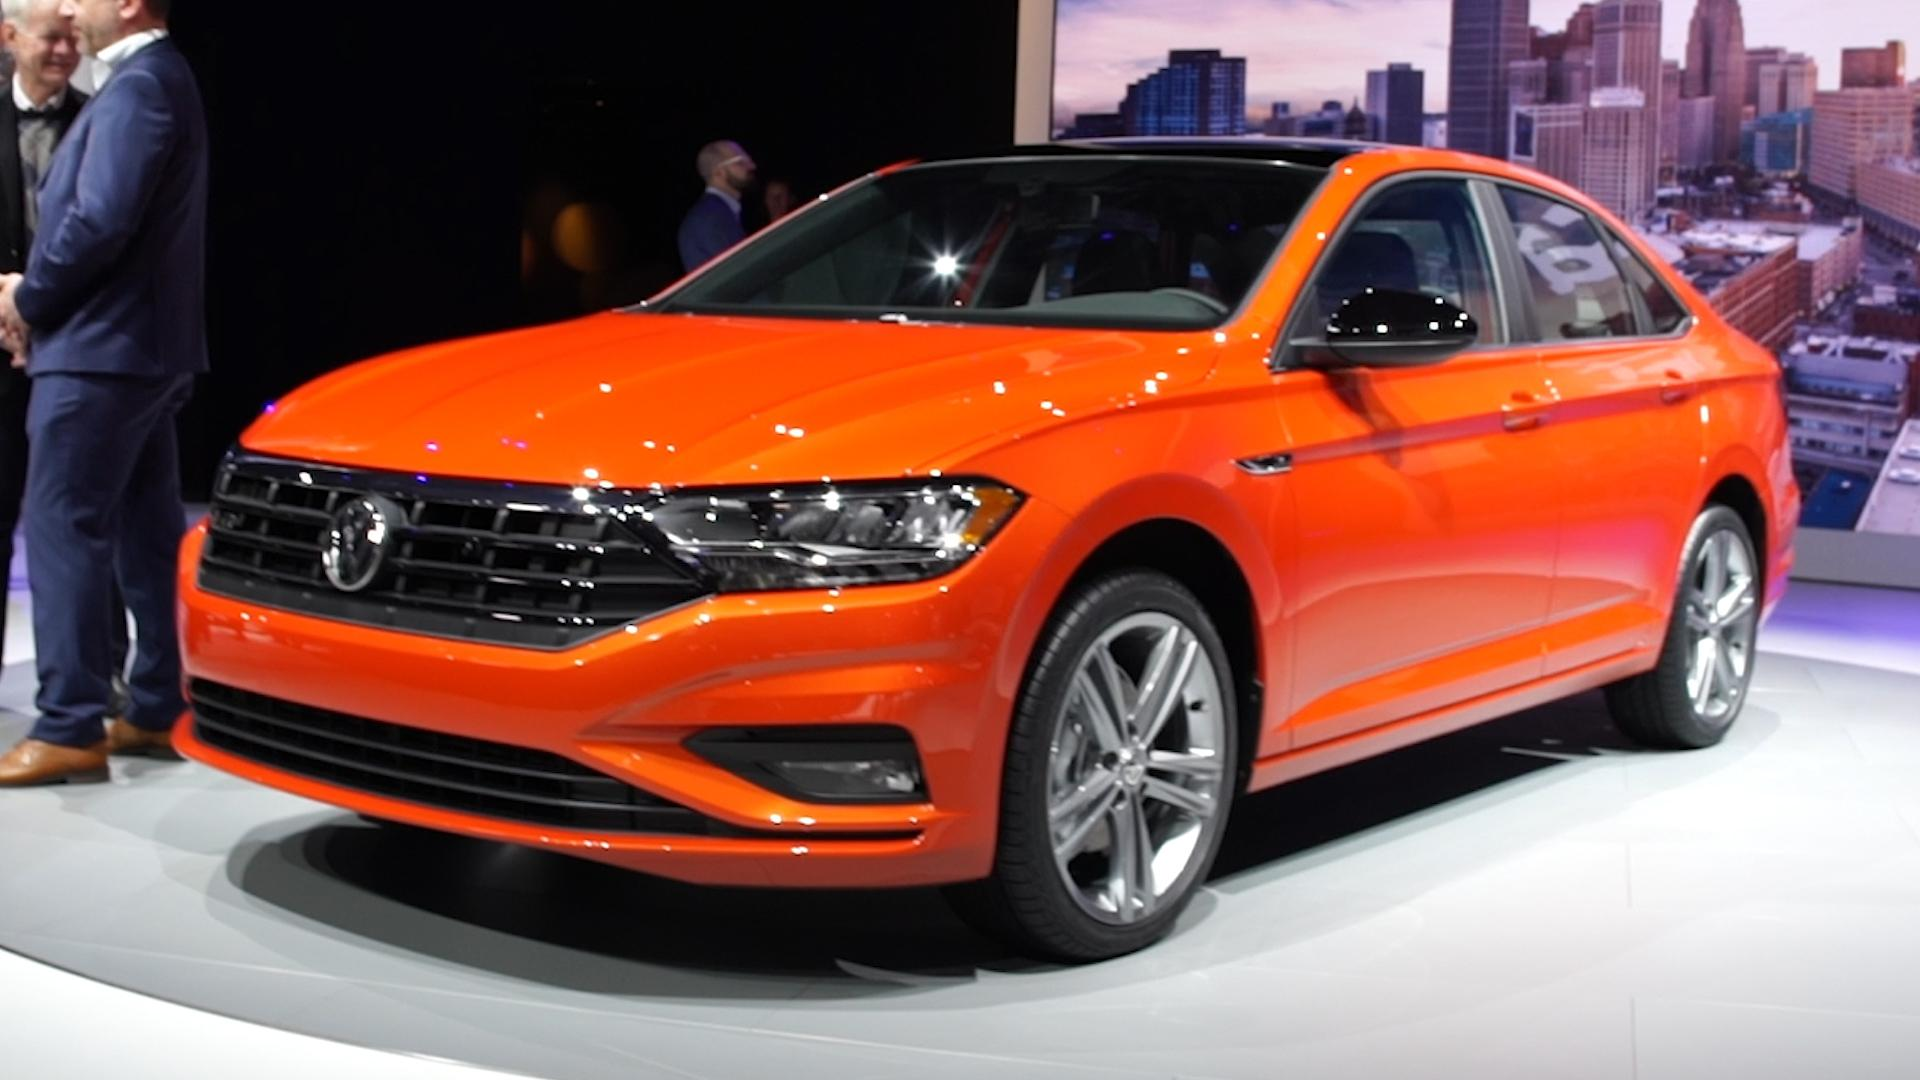 New 2019 Volkswagen Jetta Grows In Size But Shrinks In Price